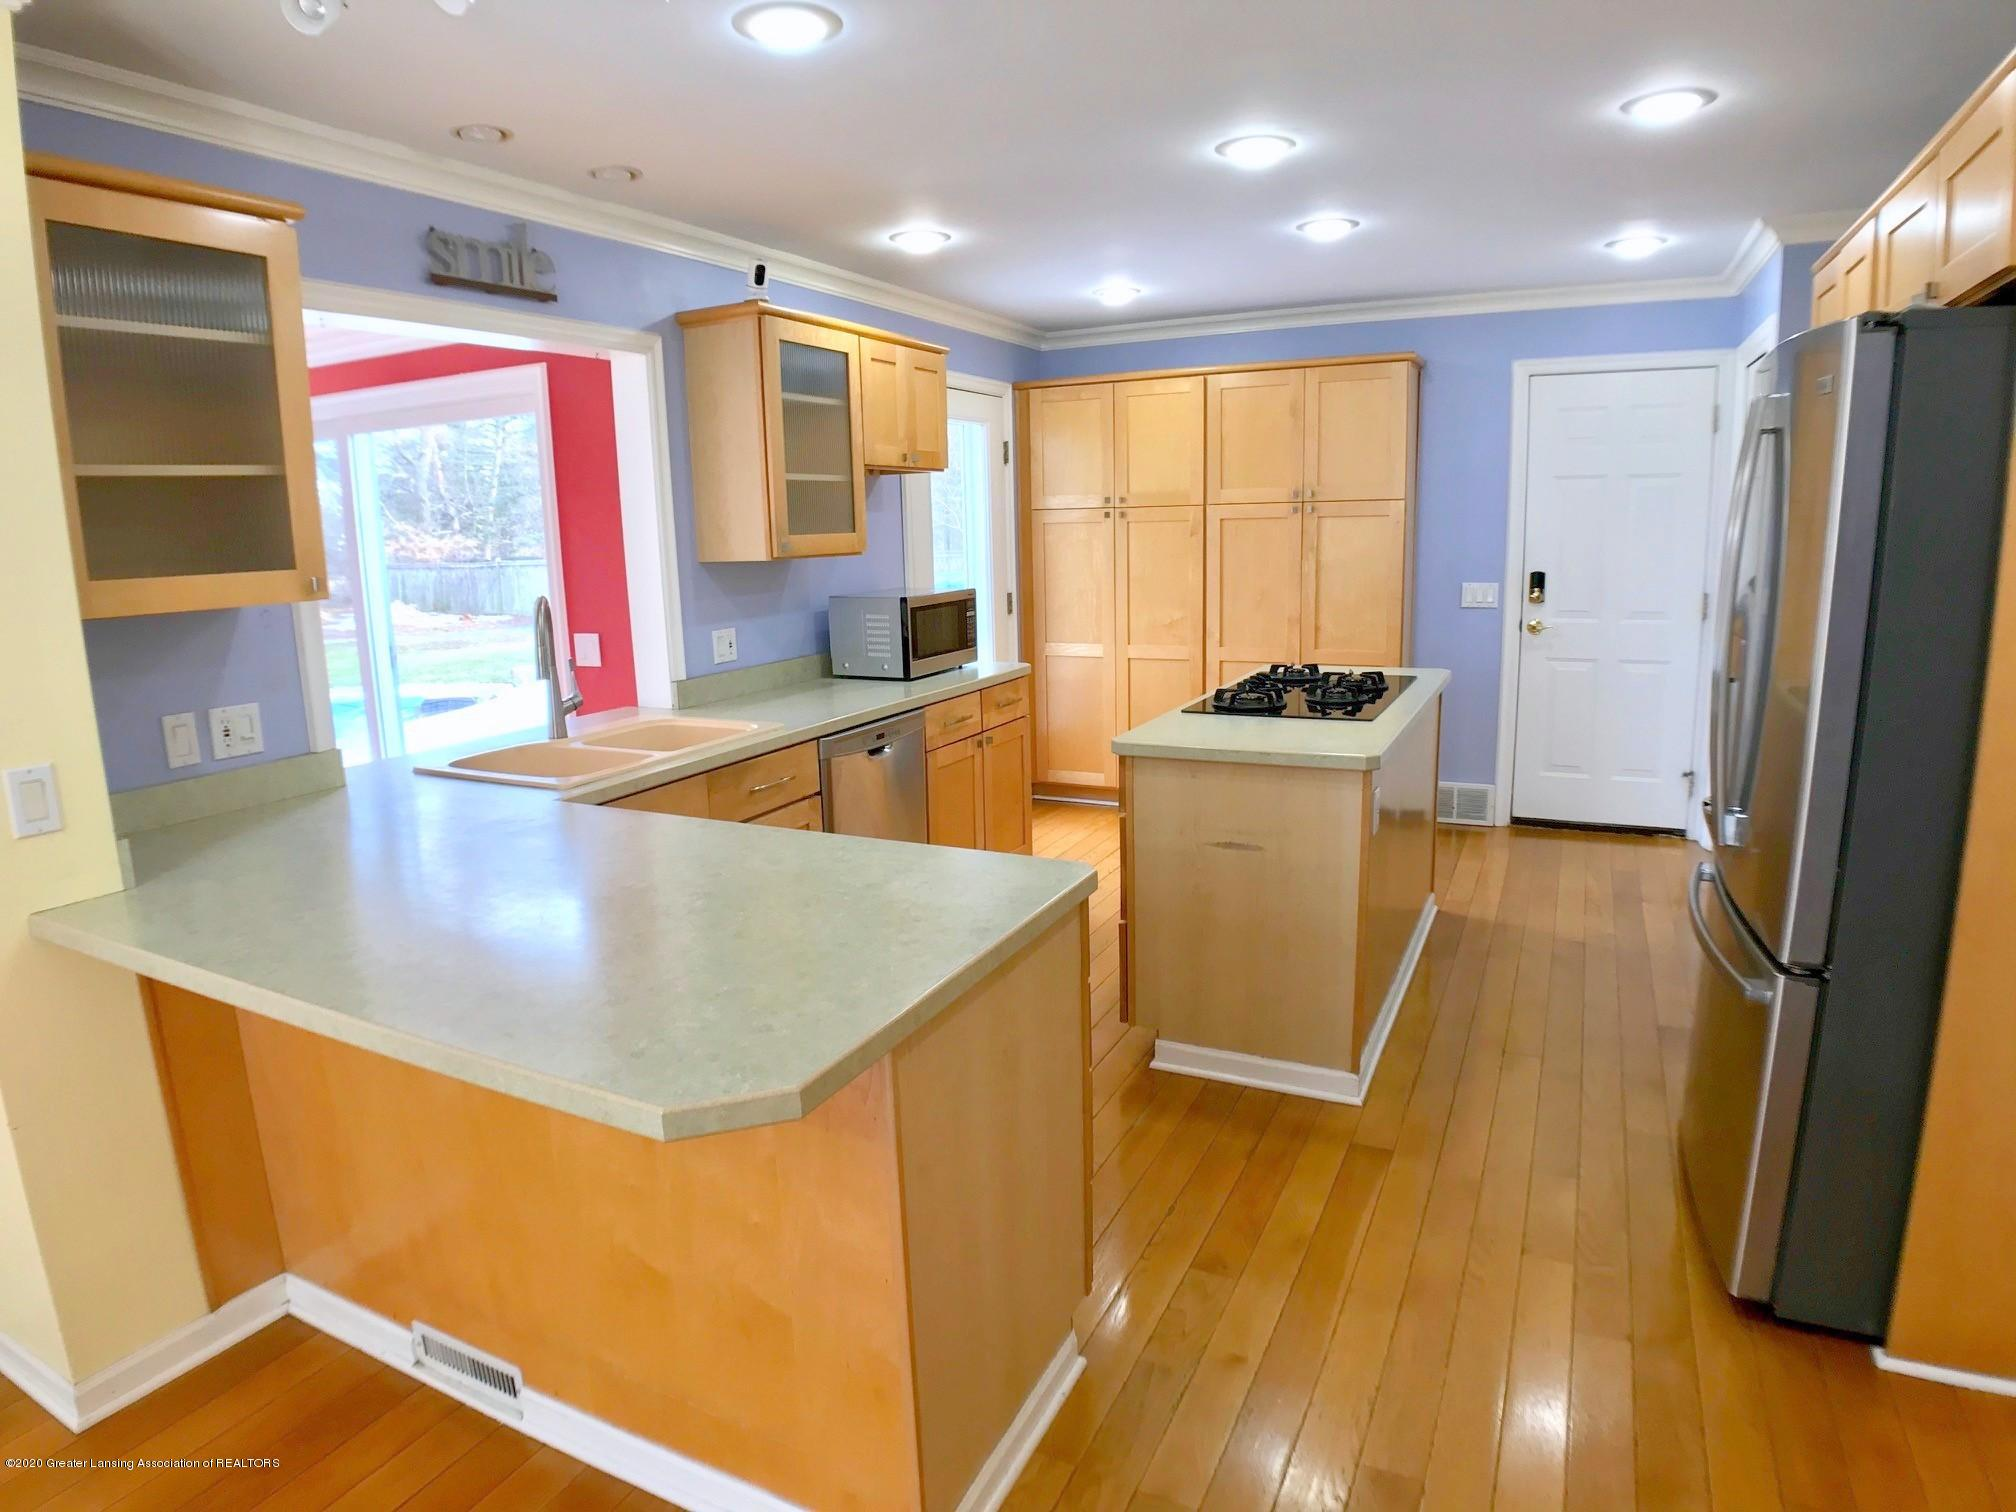 2800 N Cambridge Rd - Kitchen - 8